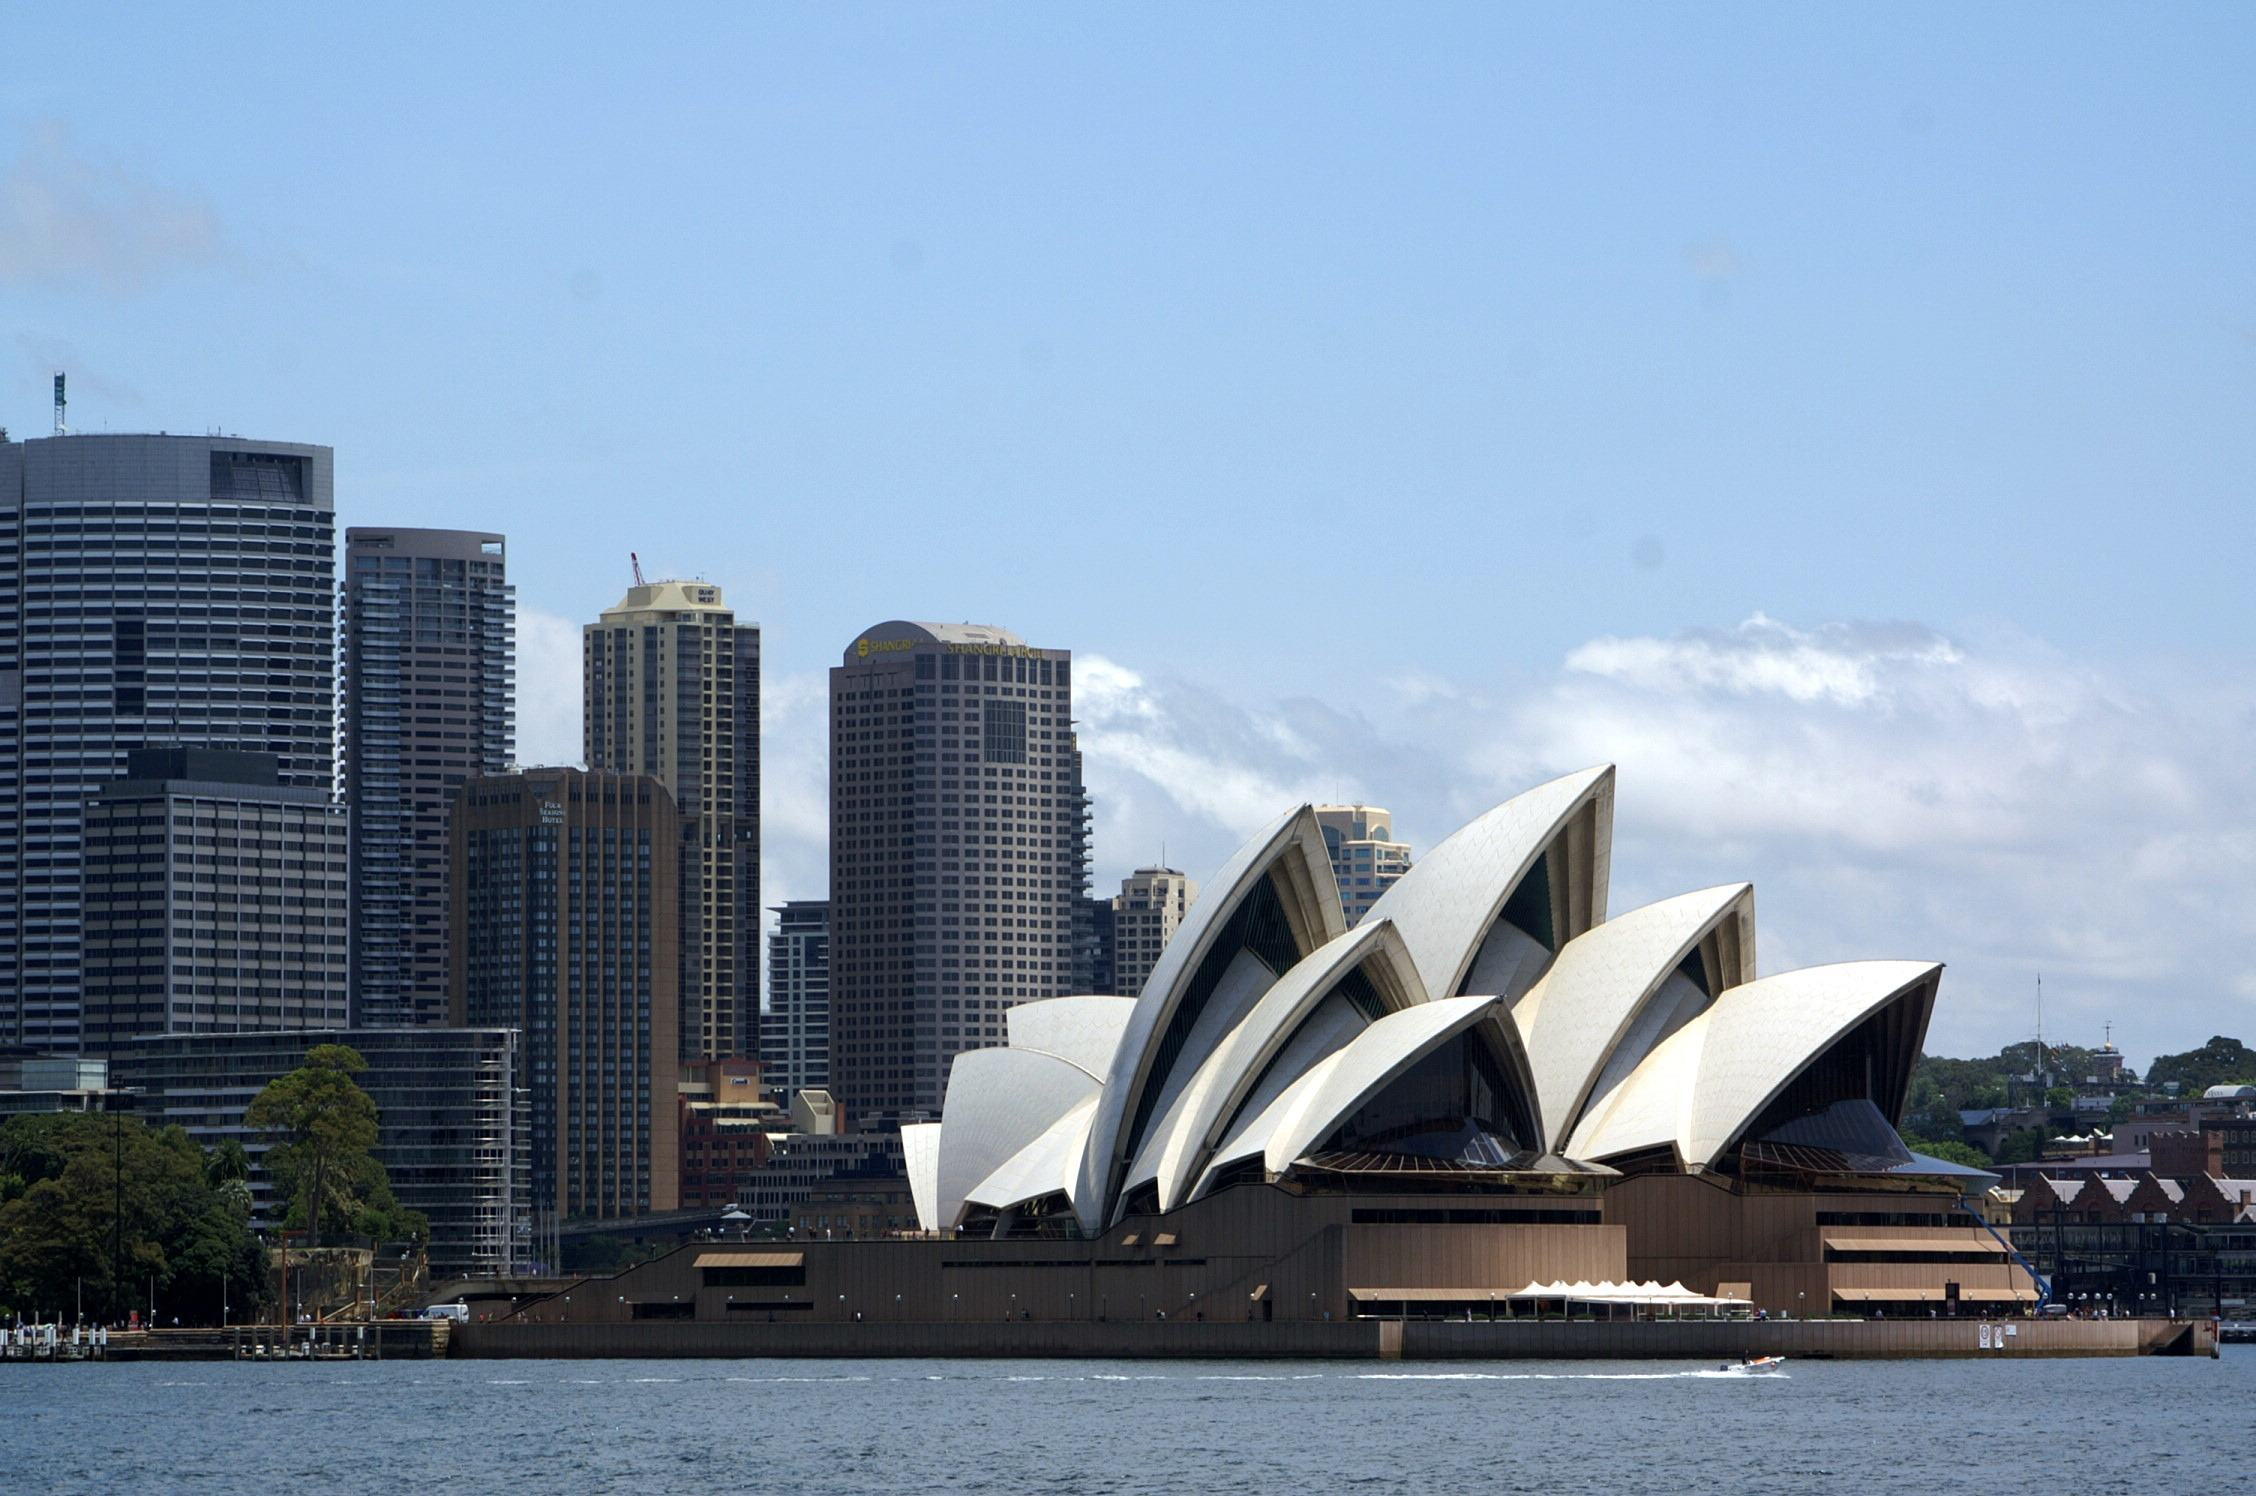 Sydney opera house as seen against the downtown towers from a harbour cruise